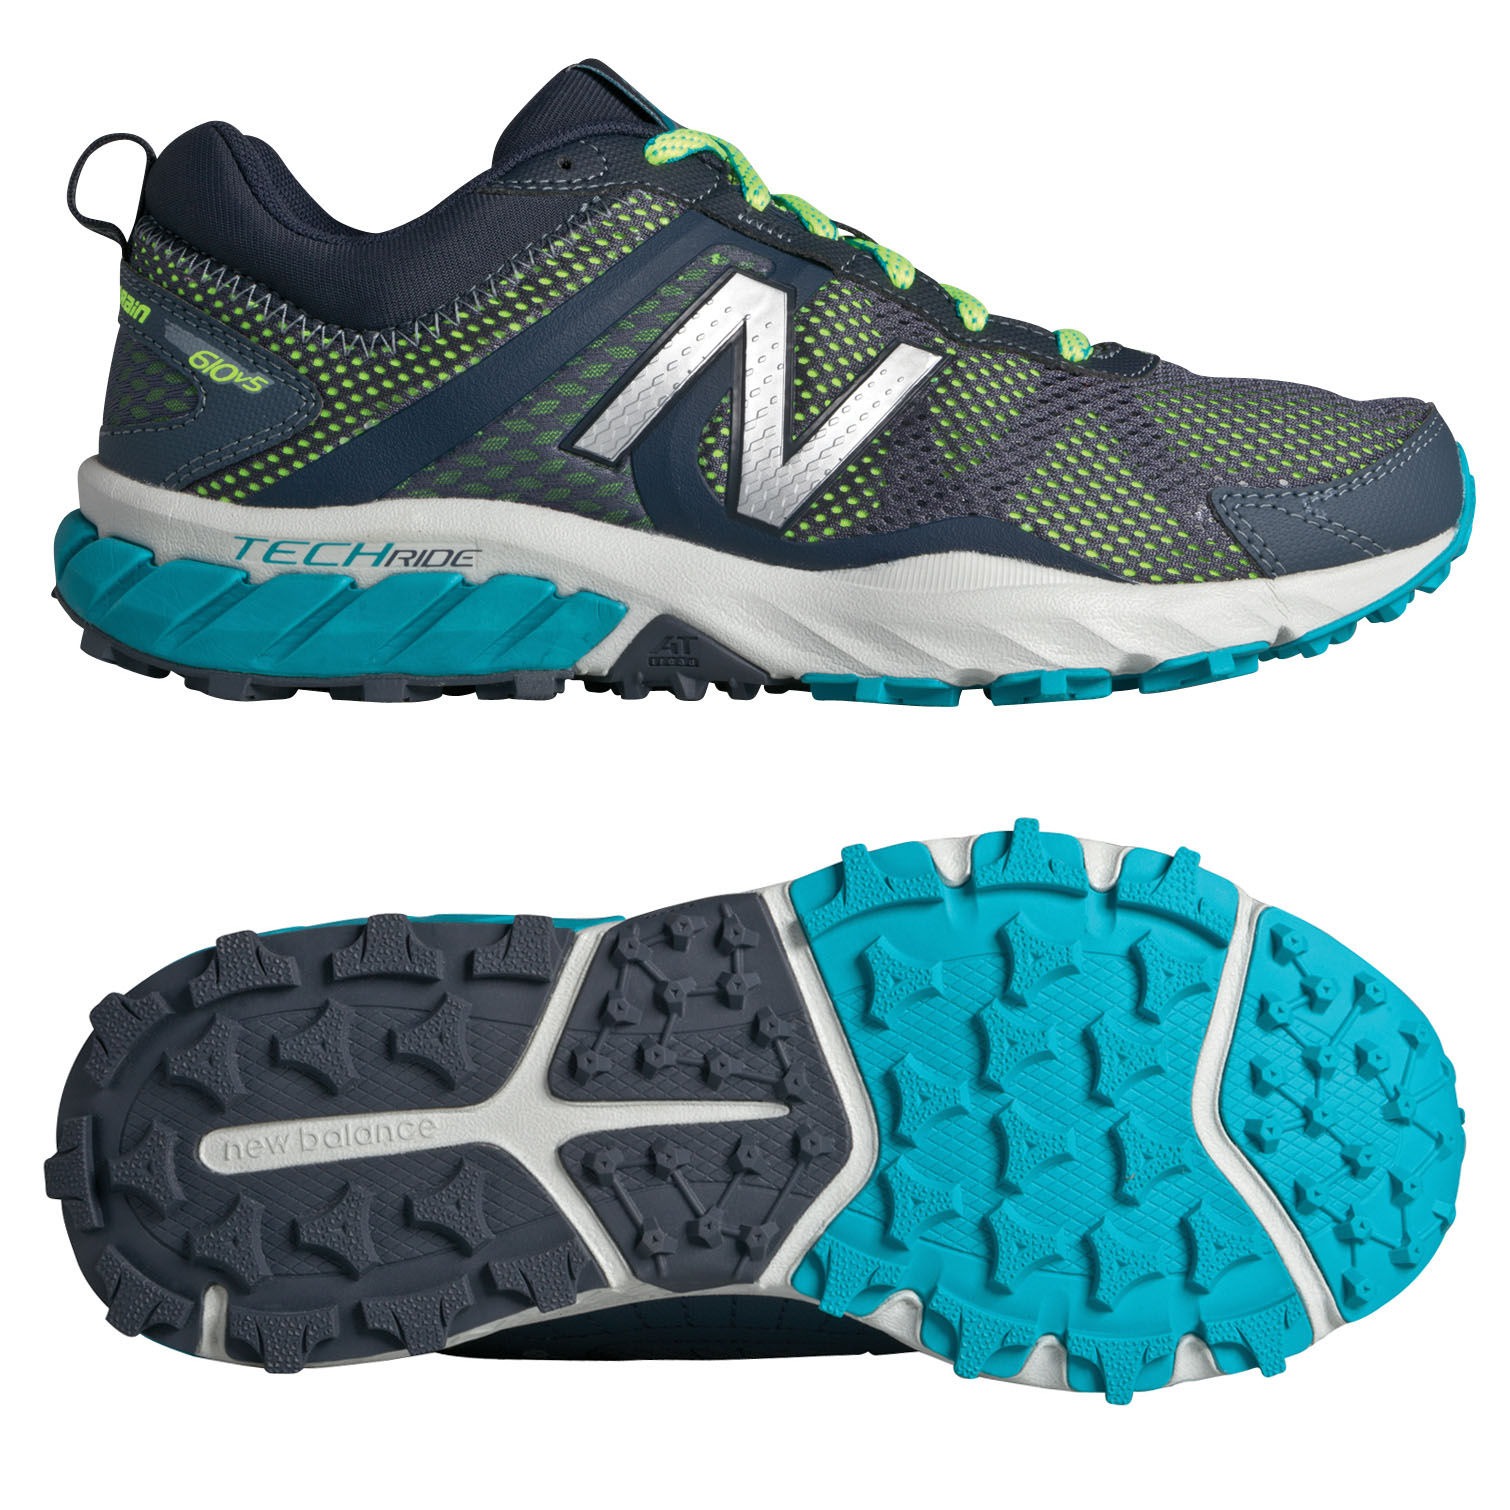 New Balance 610 V5 Ladies Running Shoes - 4.5 UK